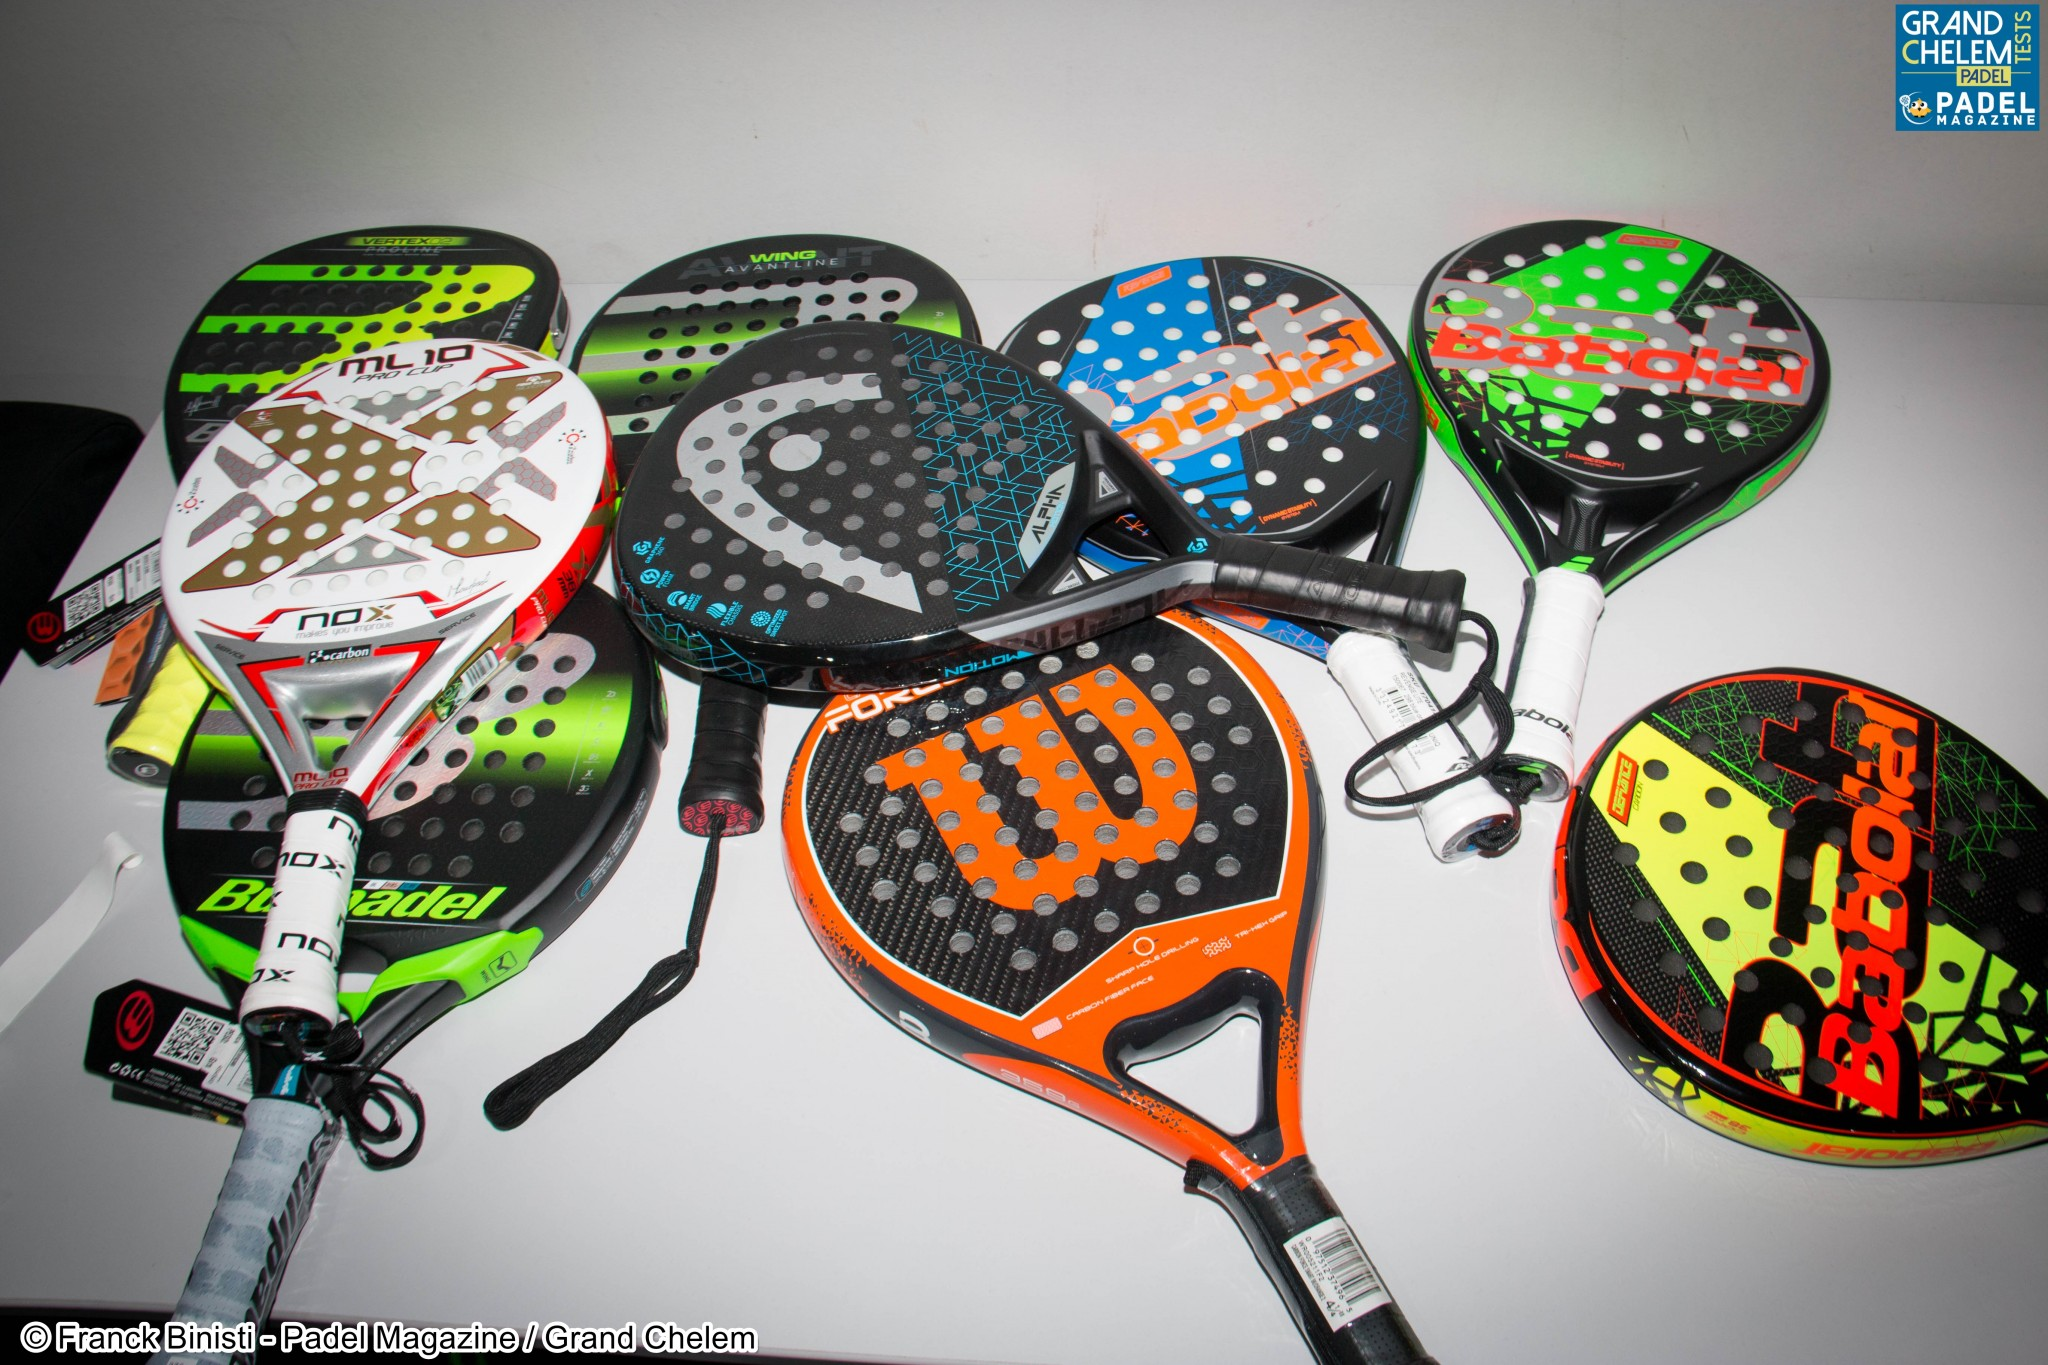 Comparison of powerful rackets